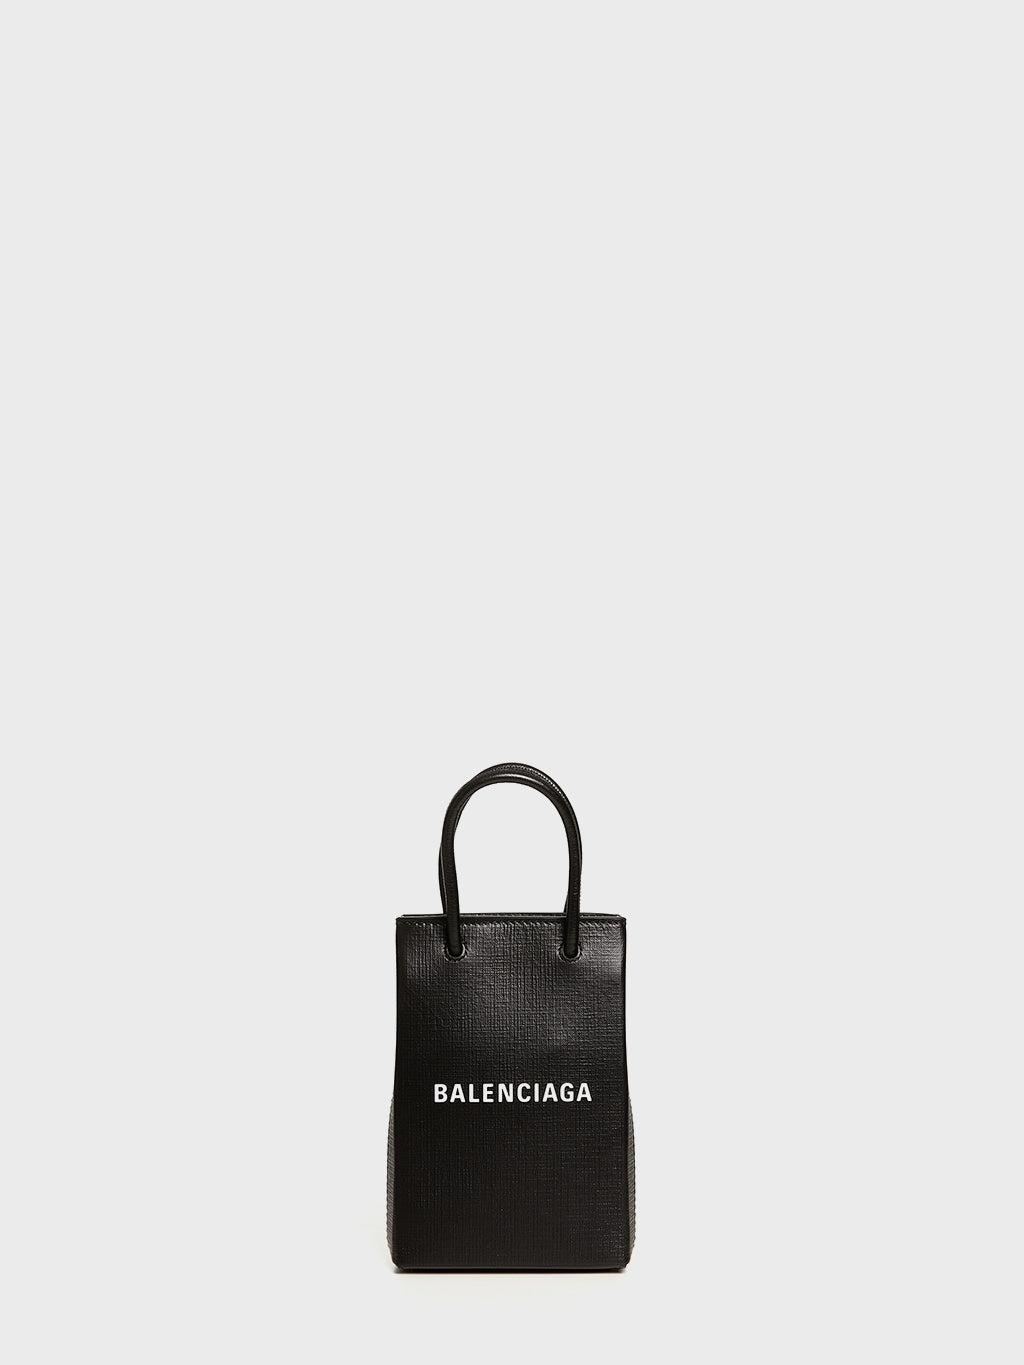 BALENCIAGA - Shopping Phone Holder Crossbody Bag | Black